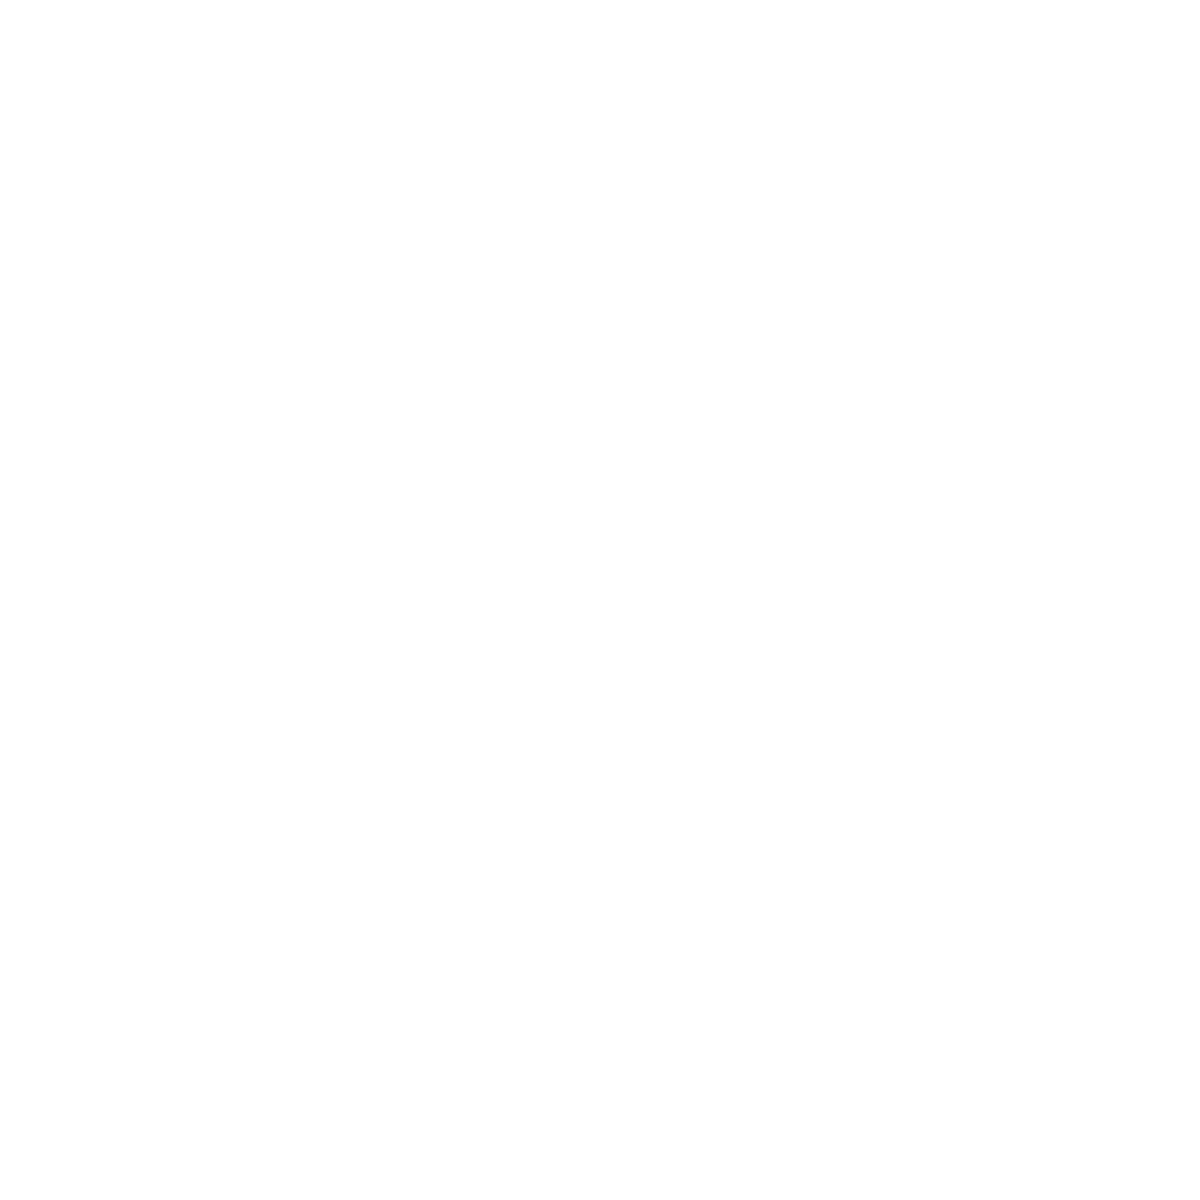 First Point Insurance